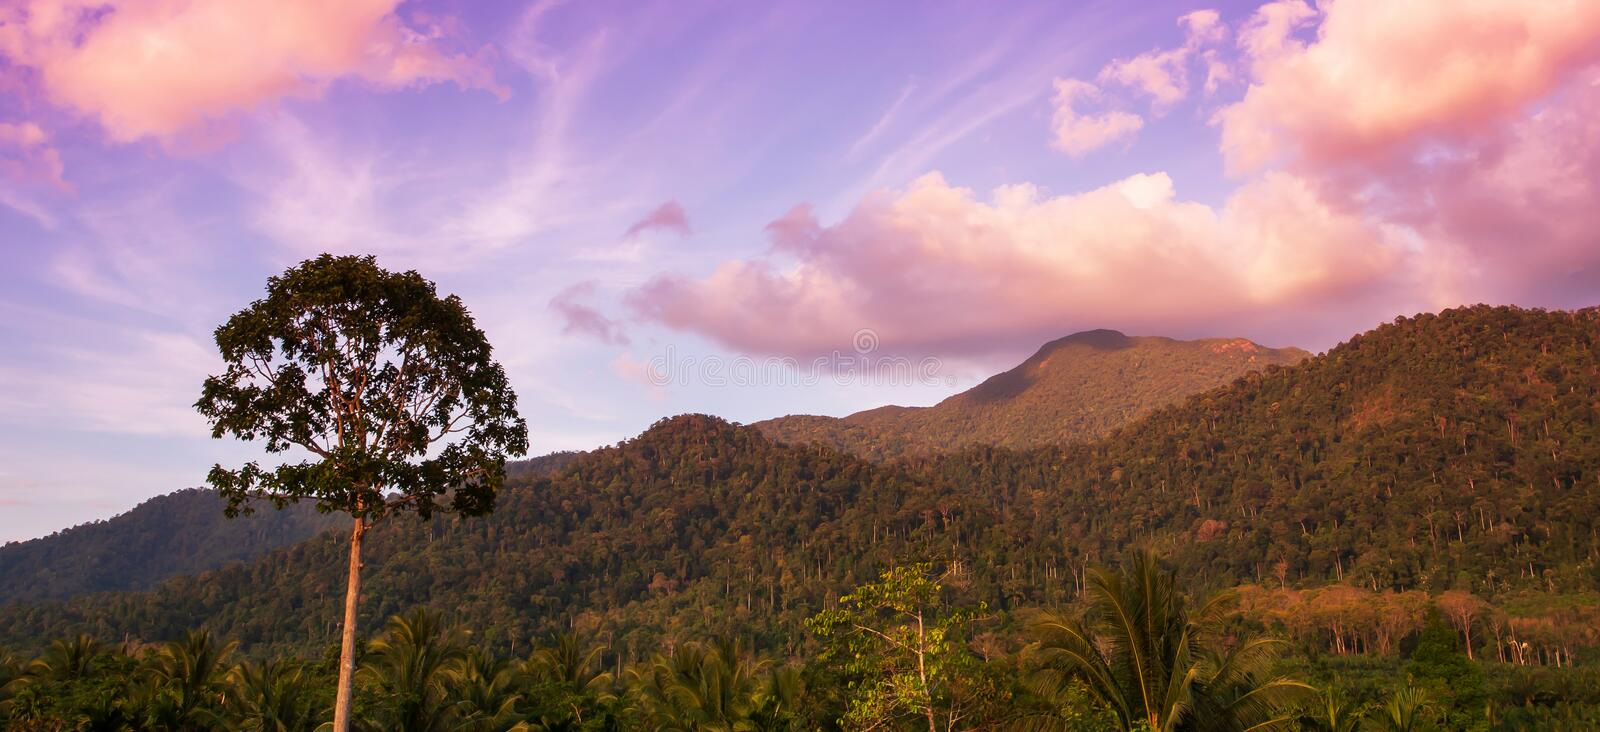 A strong tree stands alone near a mountain range at dusk. Dramatic clouds and sunset sky in backgrounds. Khao Phanom Bencha, Krabi, Thailand royalty free stock image